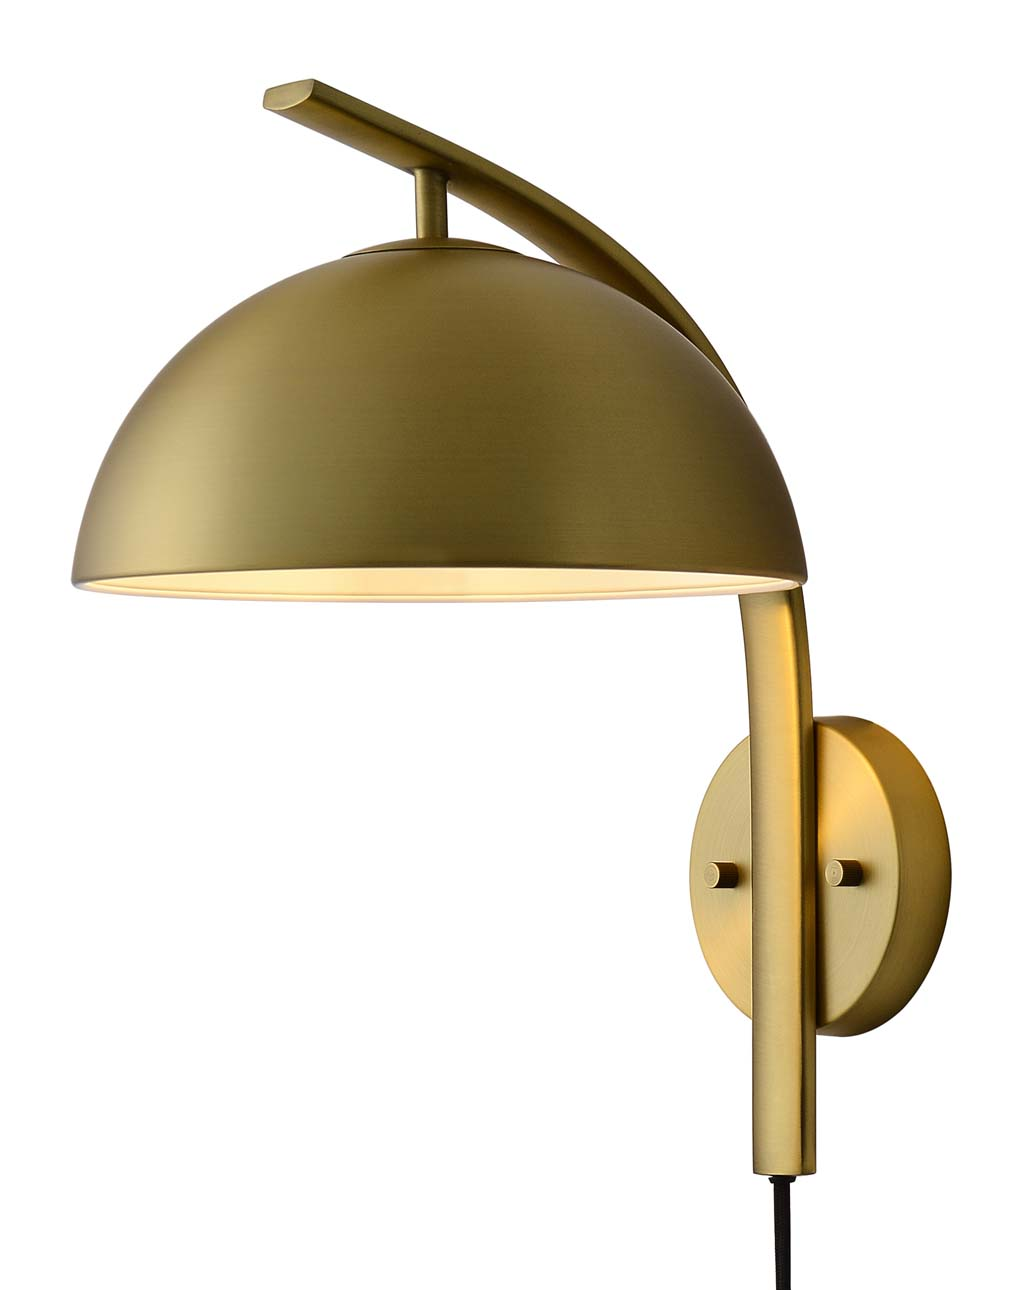 Domus Wall Sconce, Brushed Brass